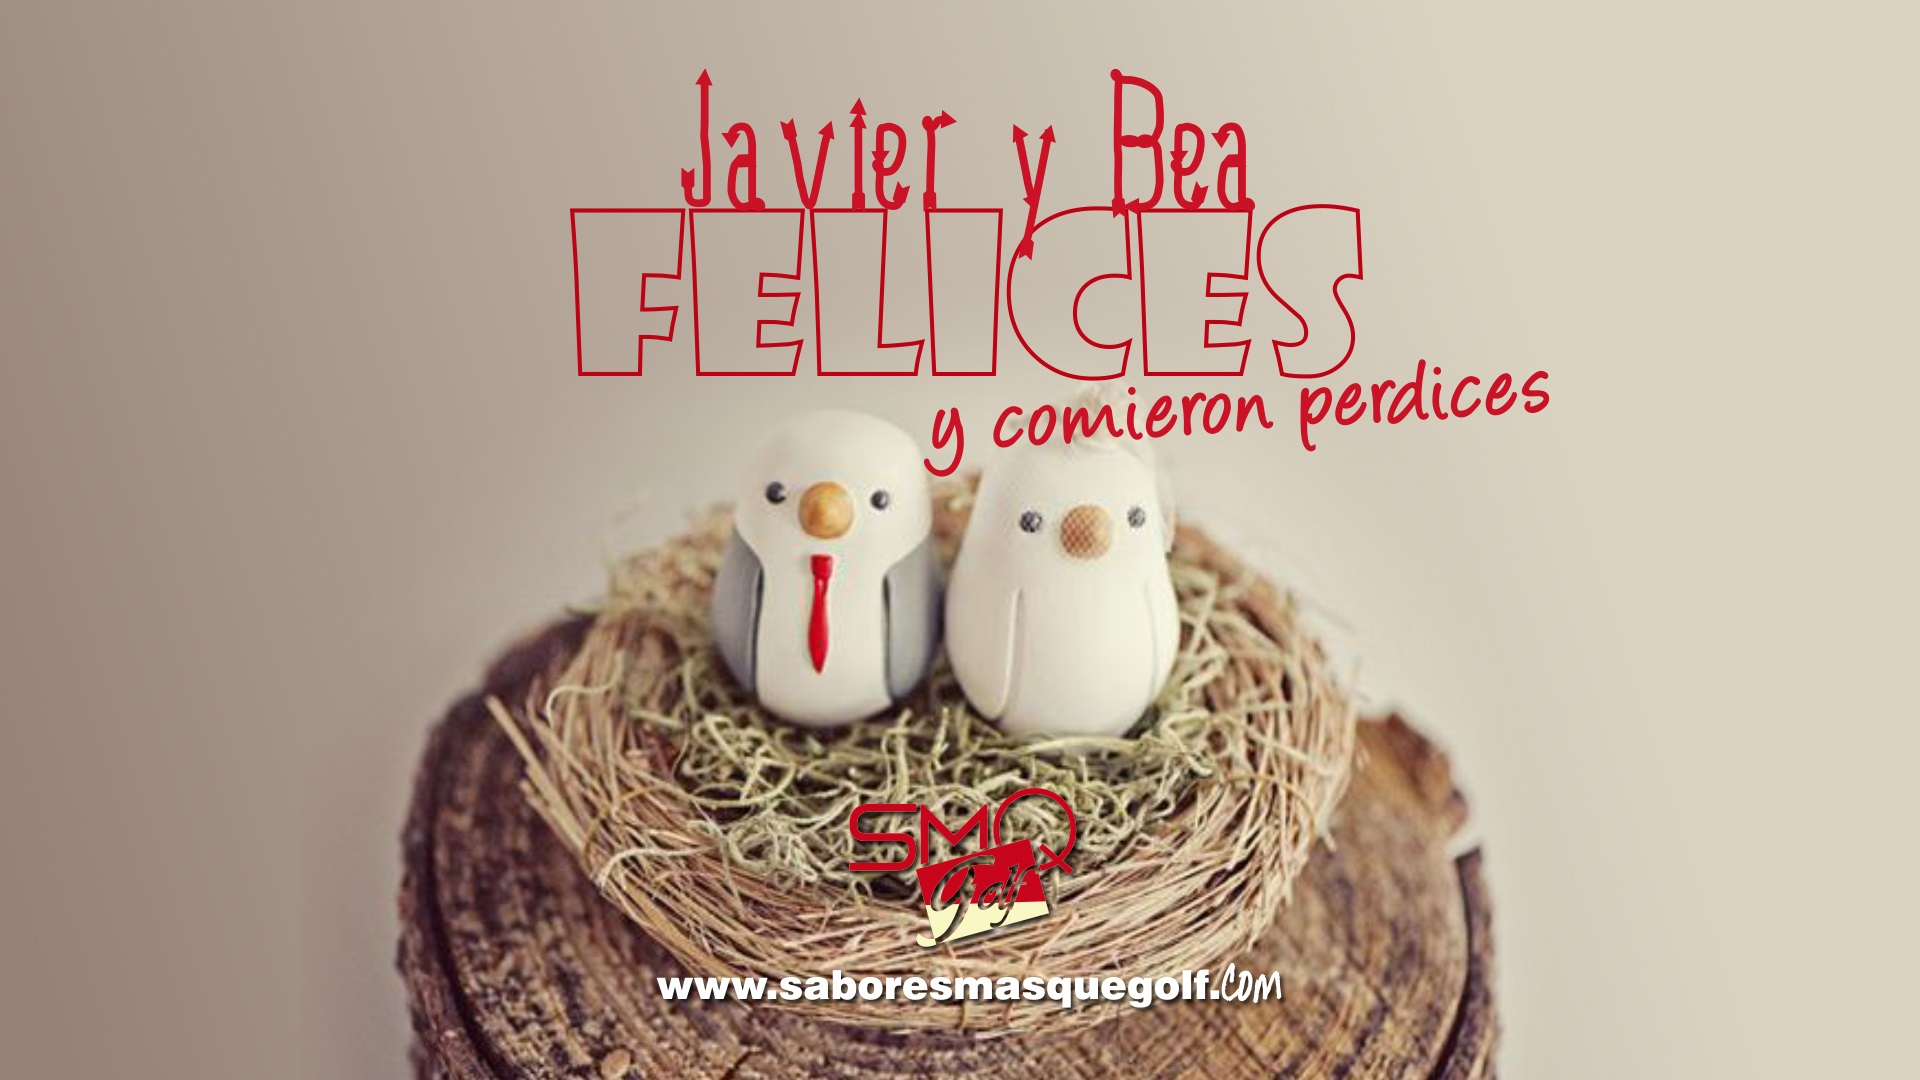 Javier y Bea Felices y Comieron perdices Blog Sabores mas que Golf by PerfectPixel Publicidad